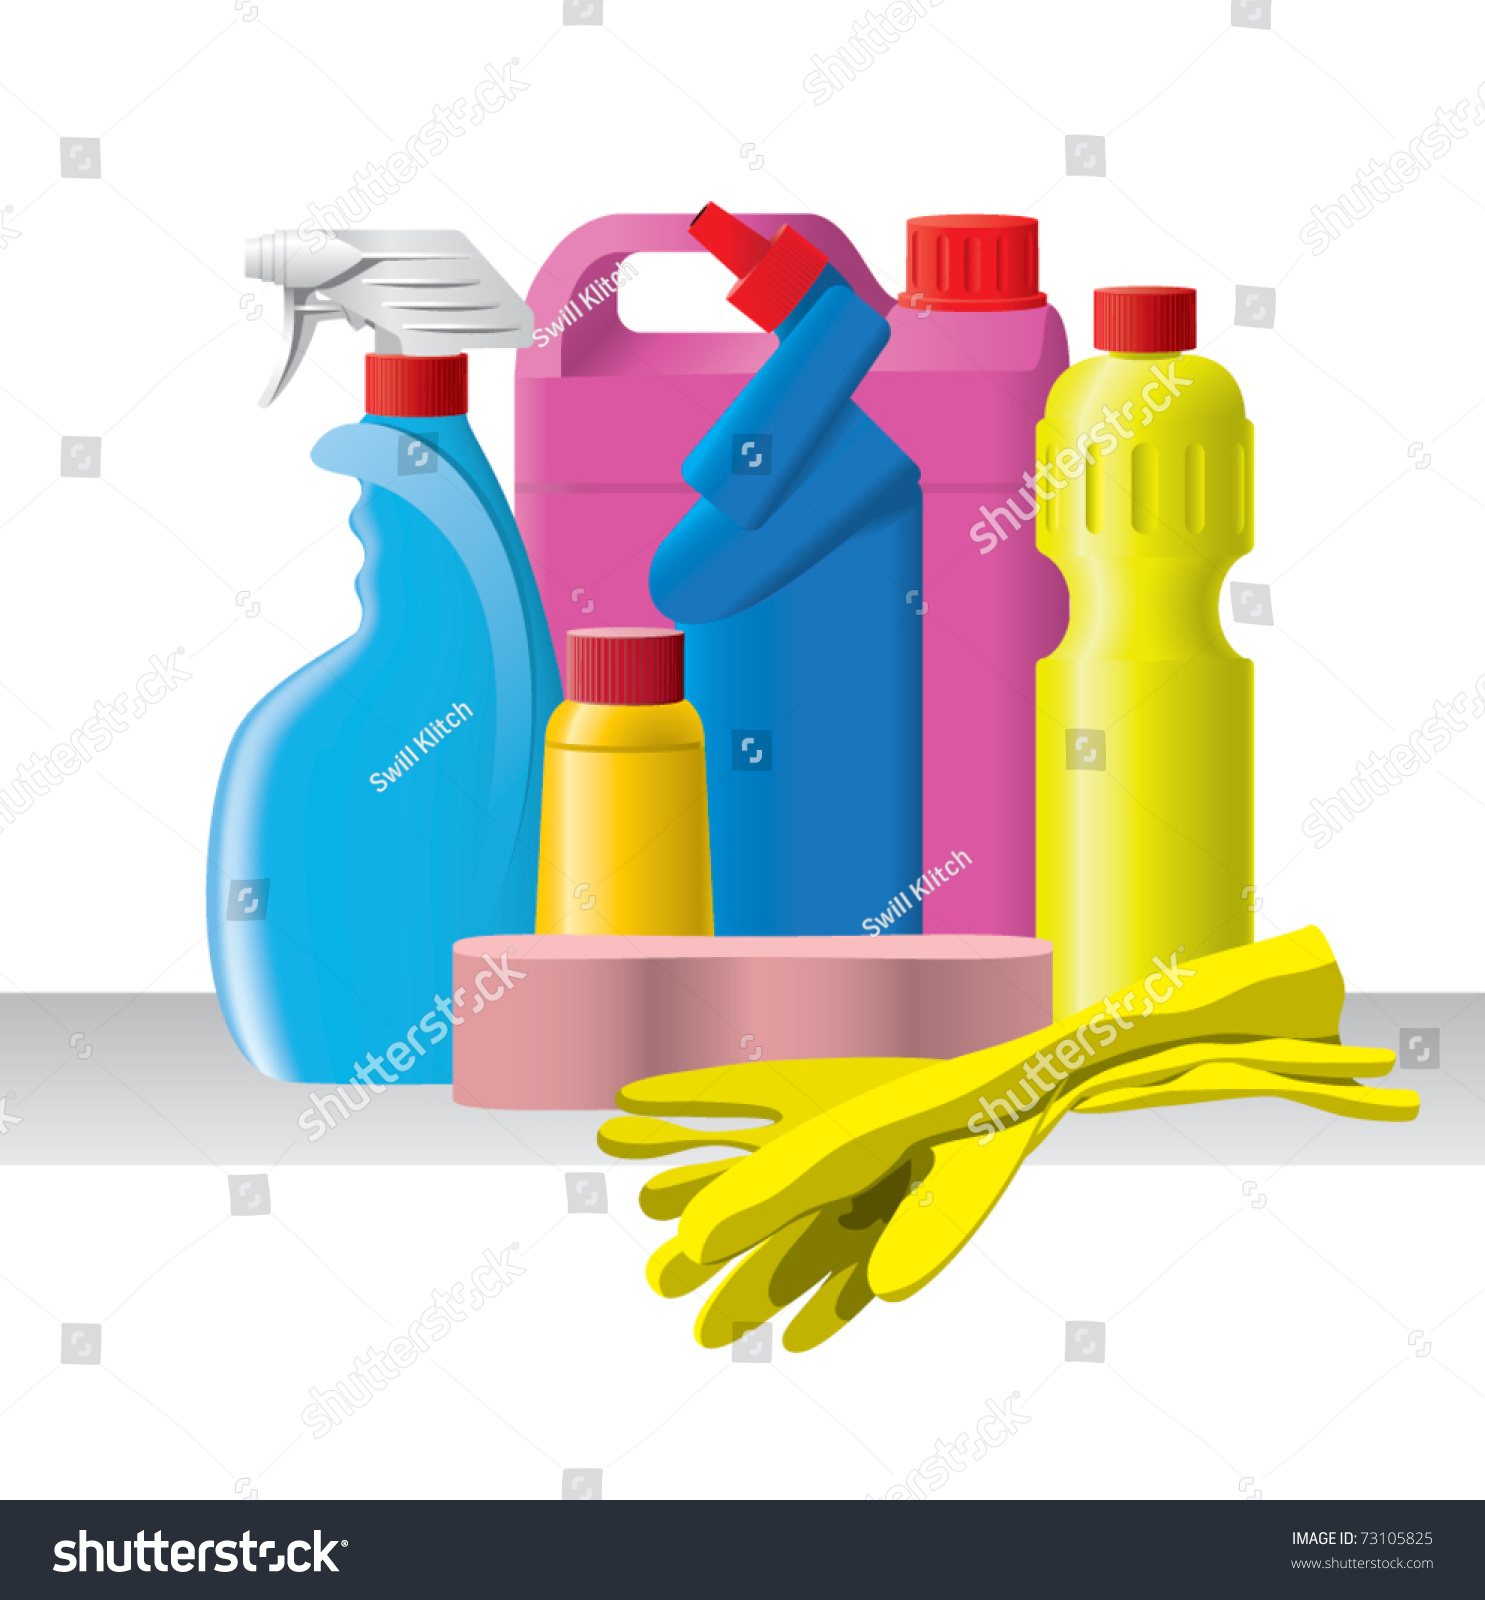 Cleaning bottles clip art - photo#28